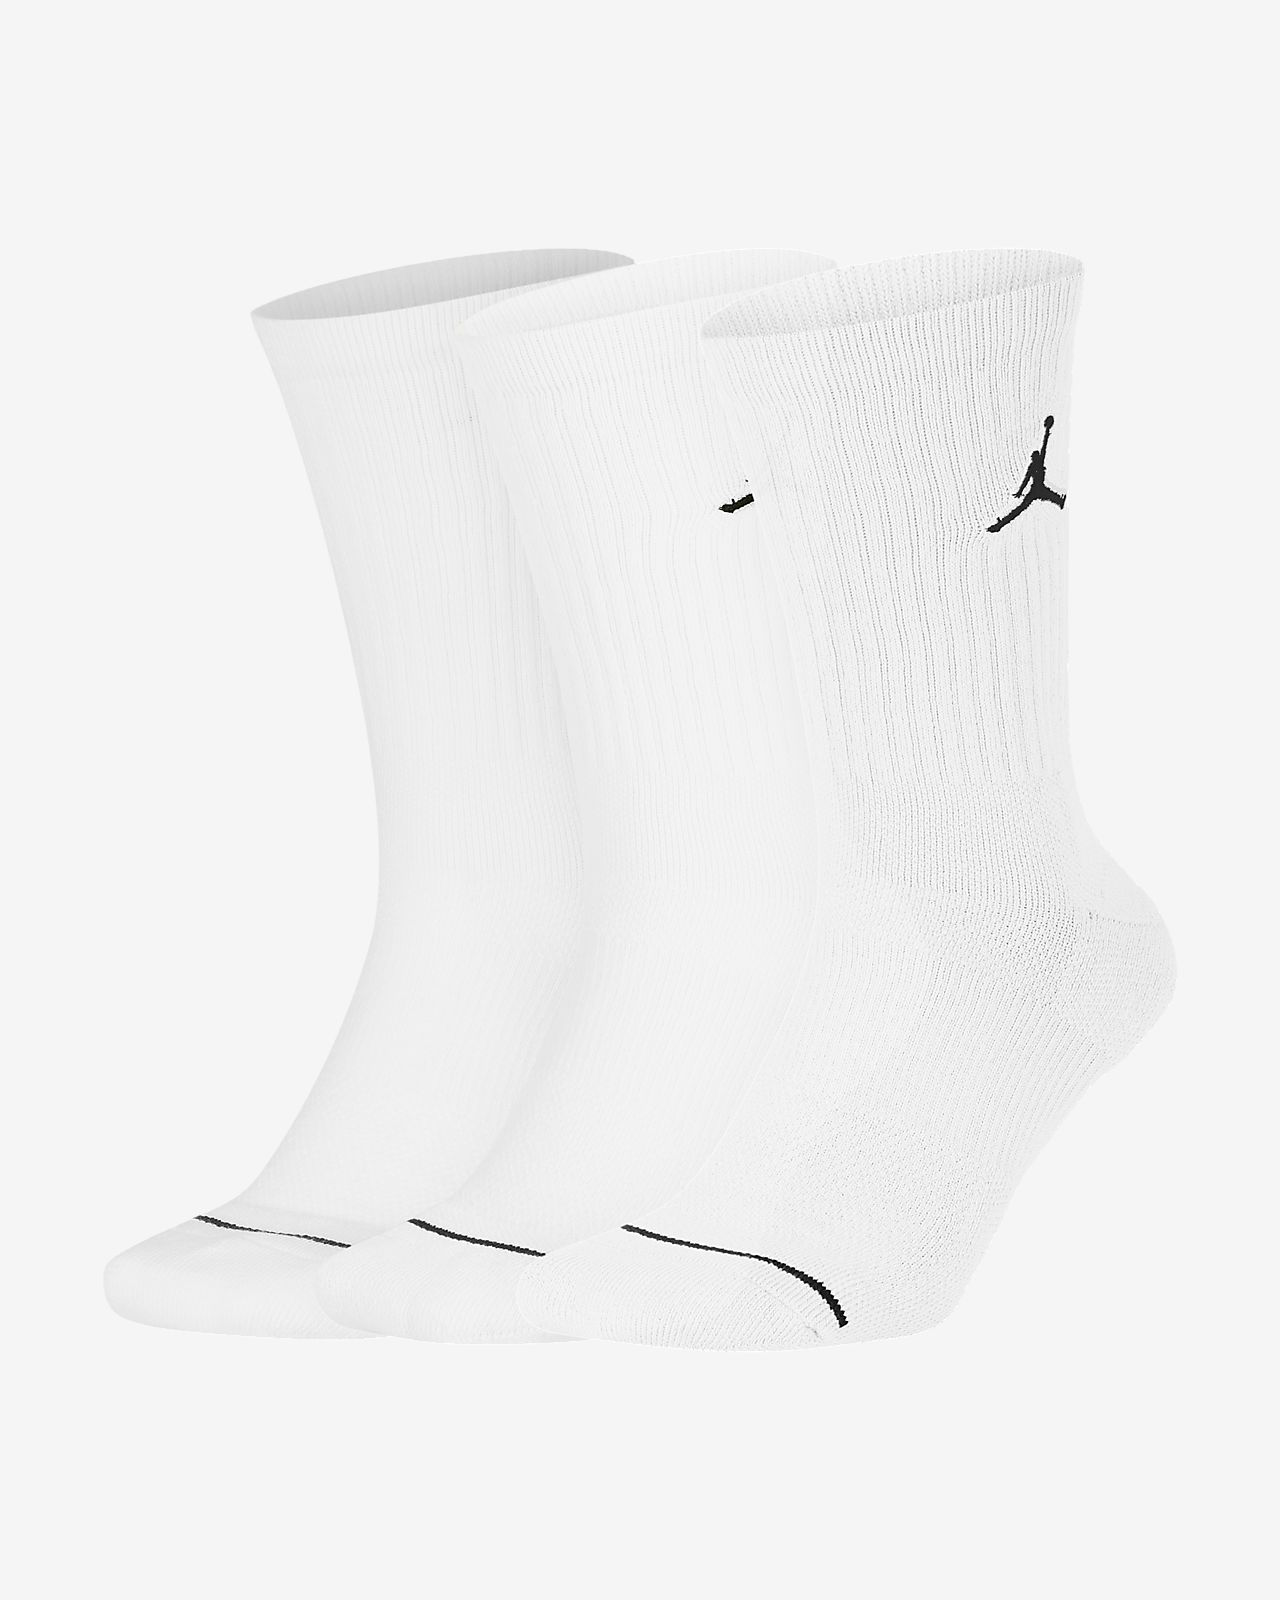 Jordan Everyday Max Unisex Crew Socks (3 Pack)